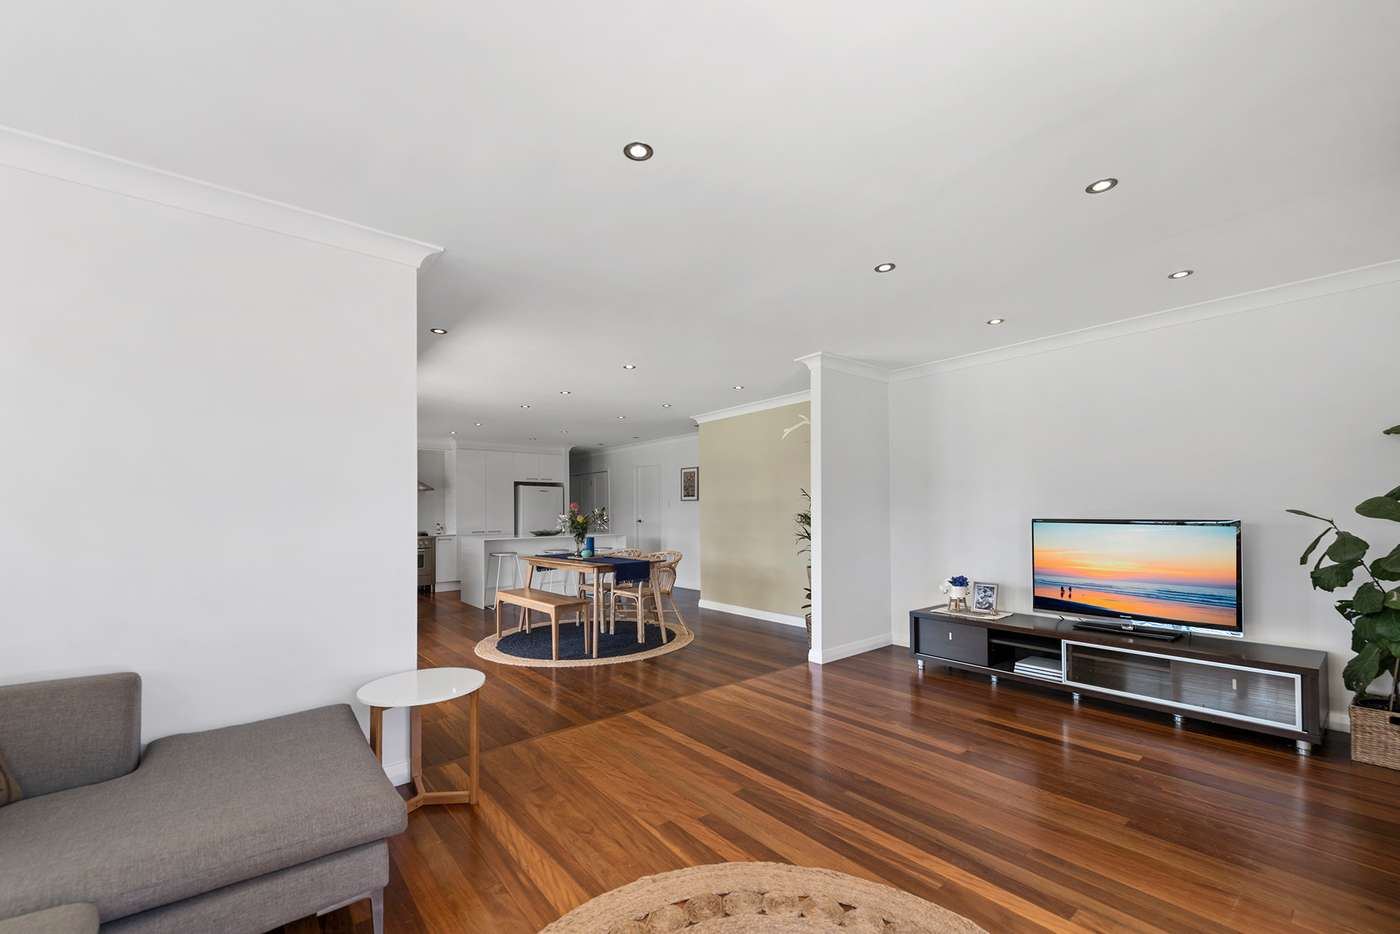 Seventh view of Homely house listing, 26 Tindara Drive, Sawtell NSW 2452